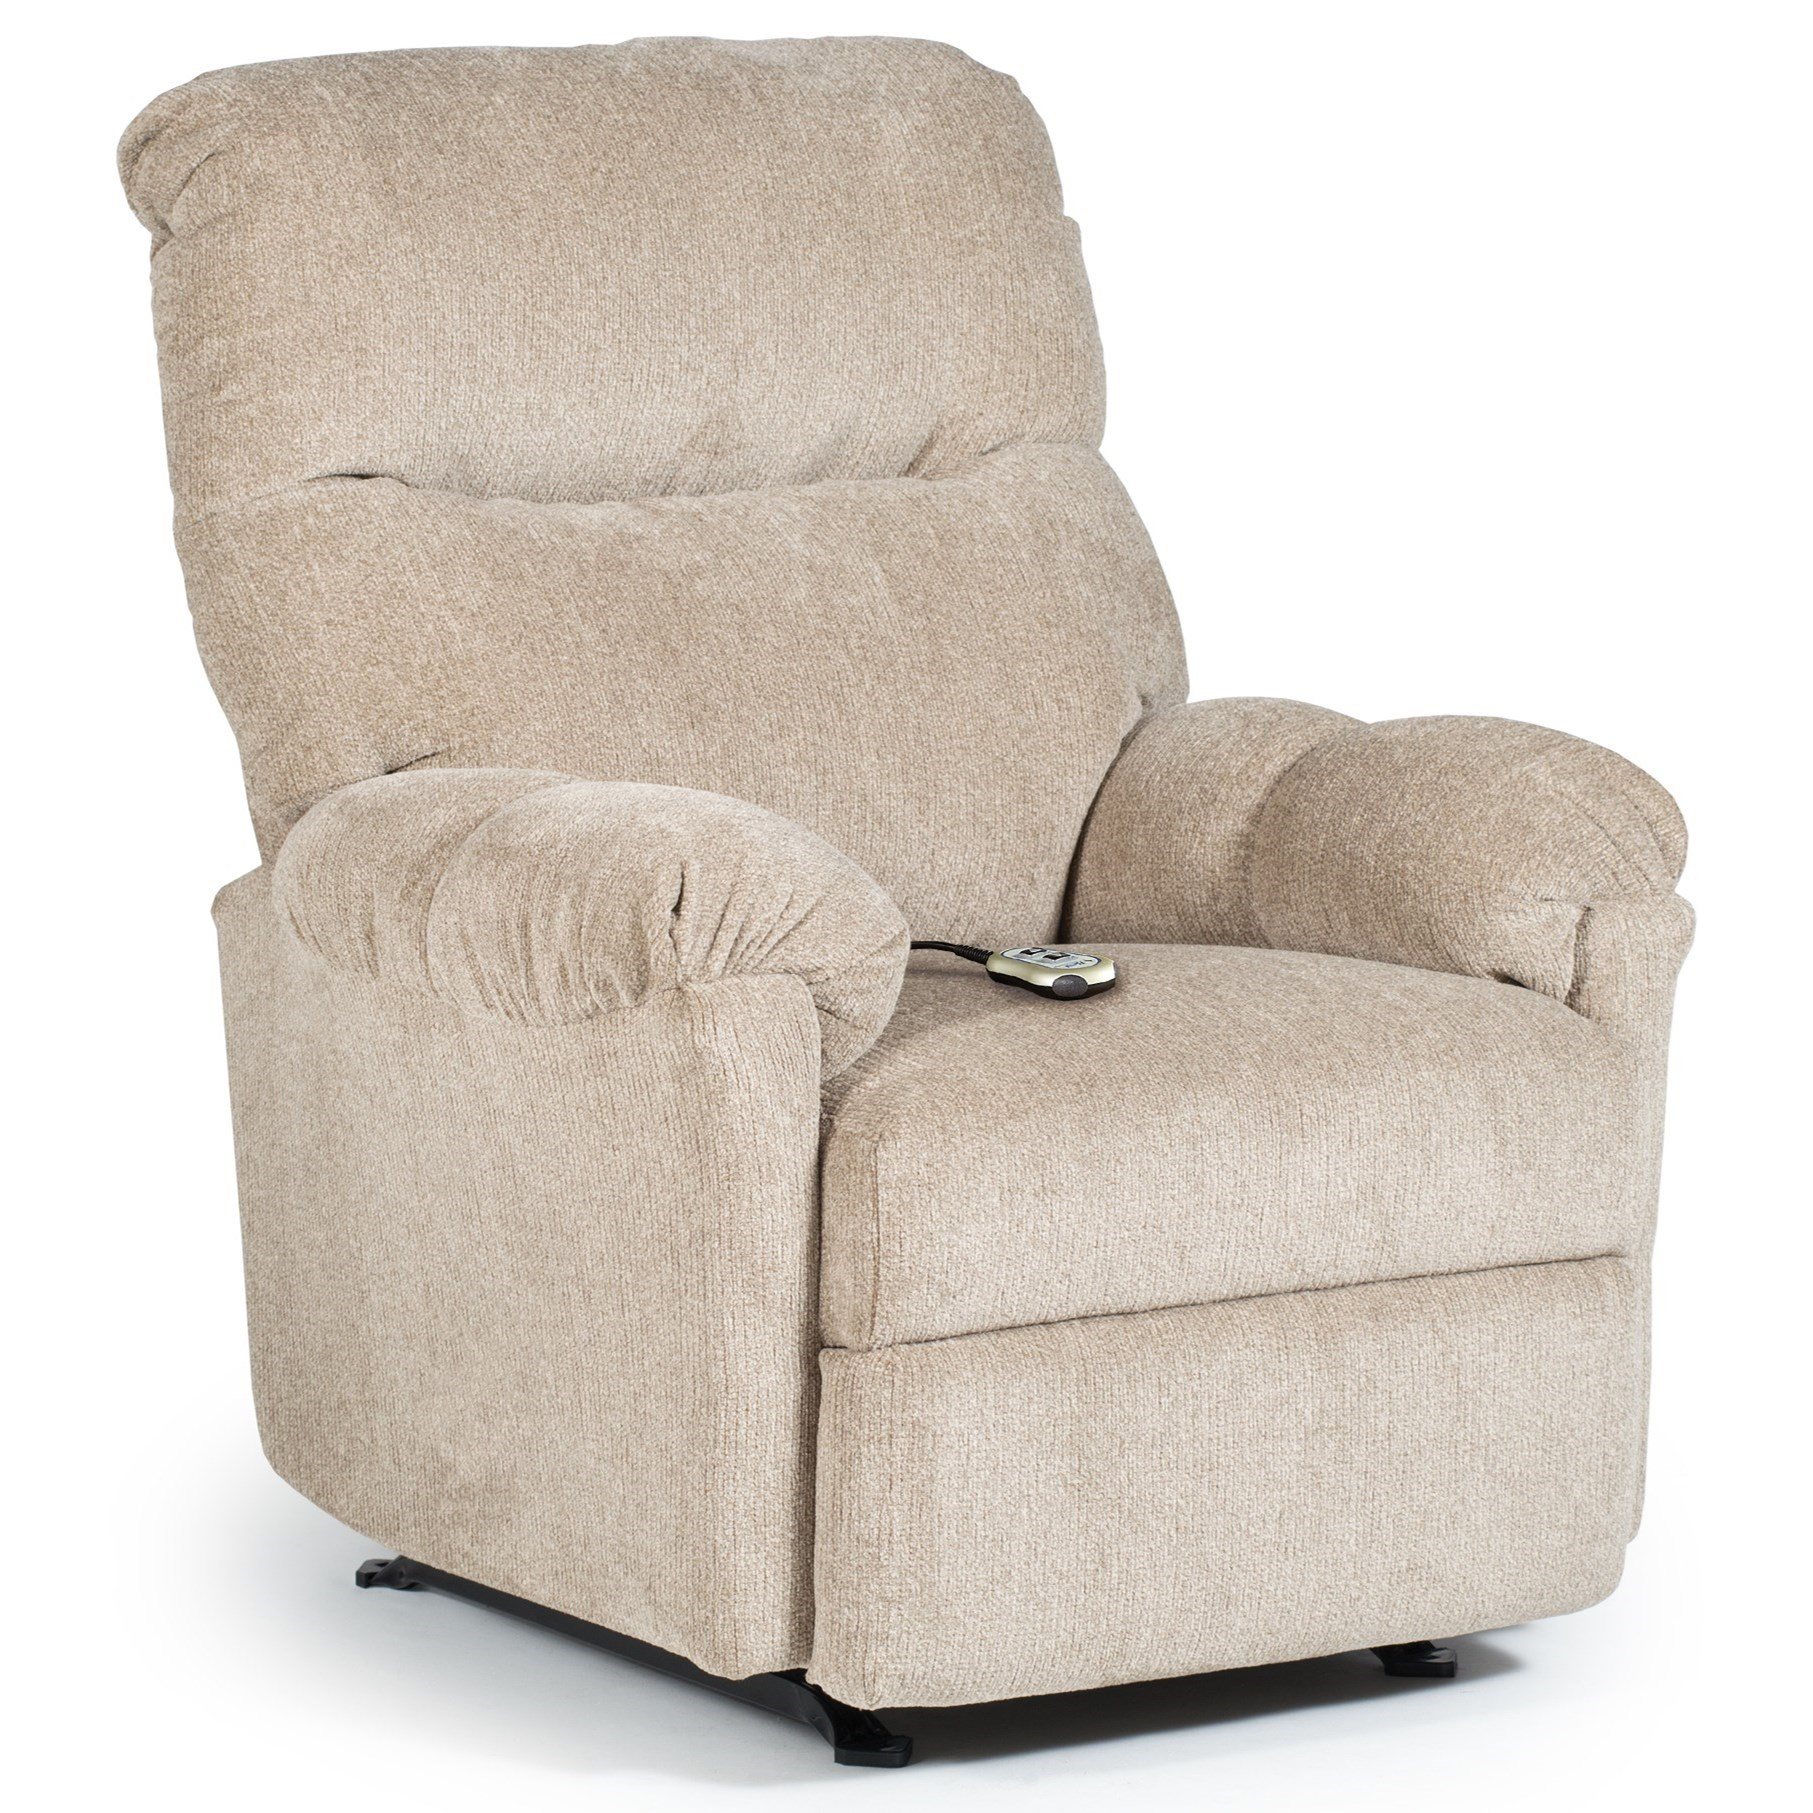 Lift Chairs Recliners Best Home Furnishings Medium Recliners Balmore Power Lift